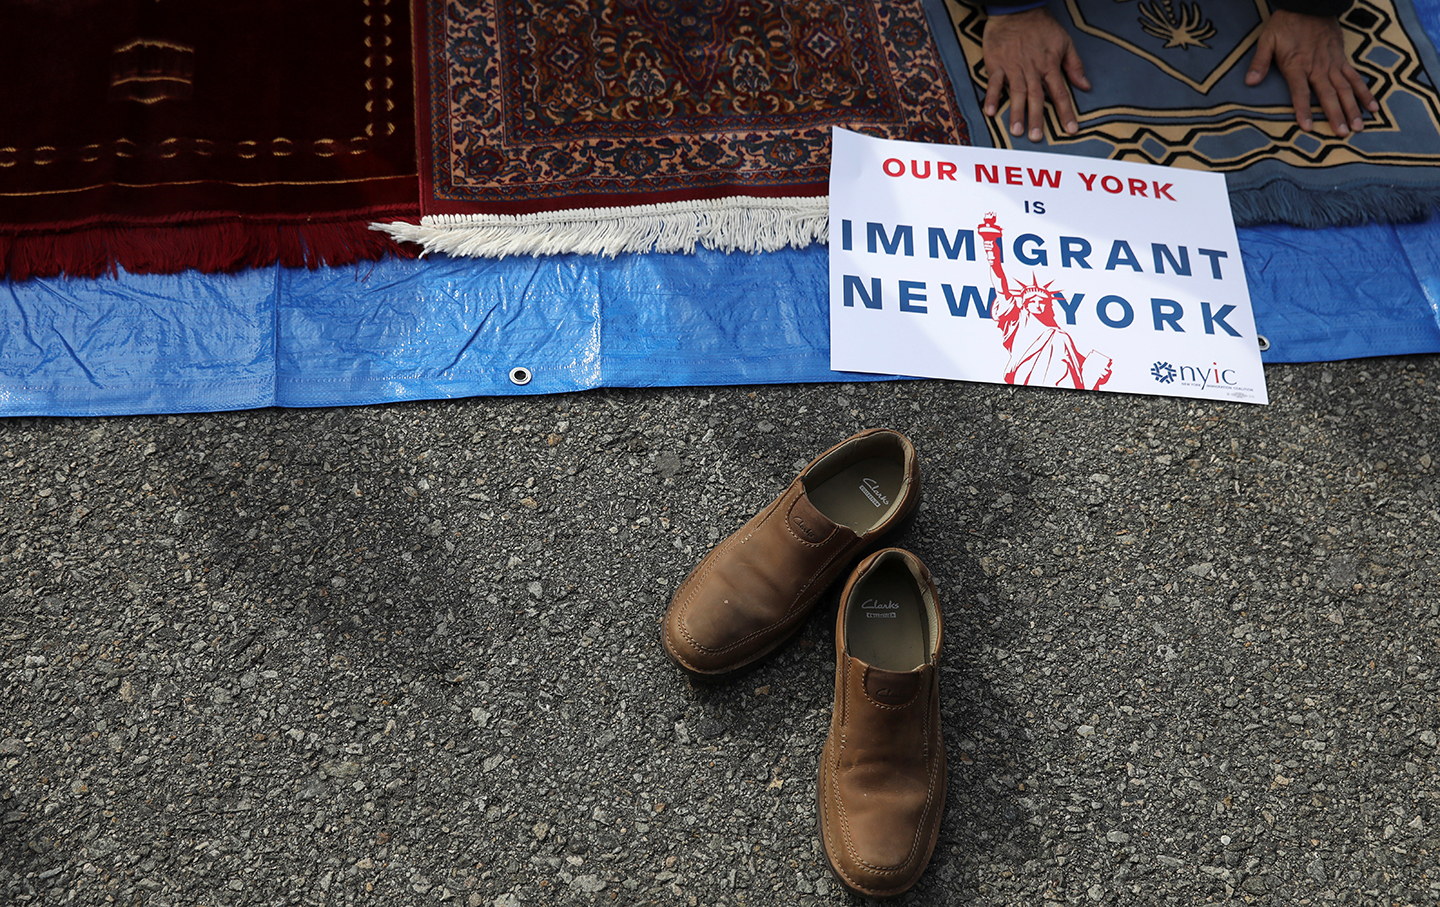 Immigrant New York sign at JFK